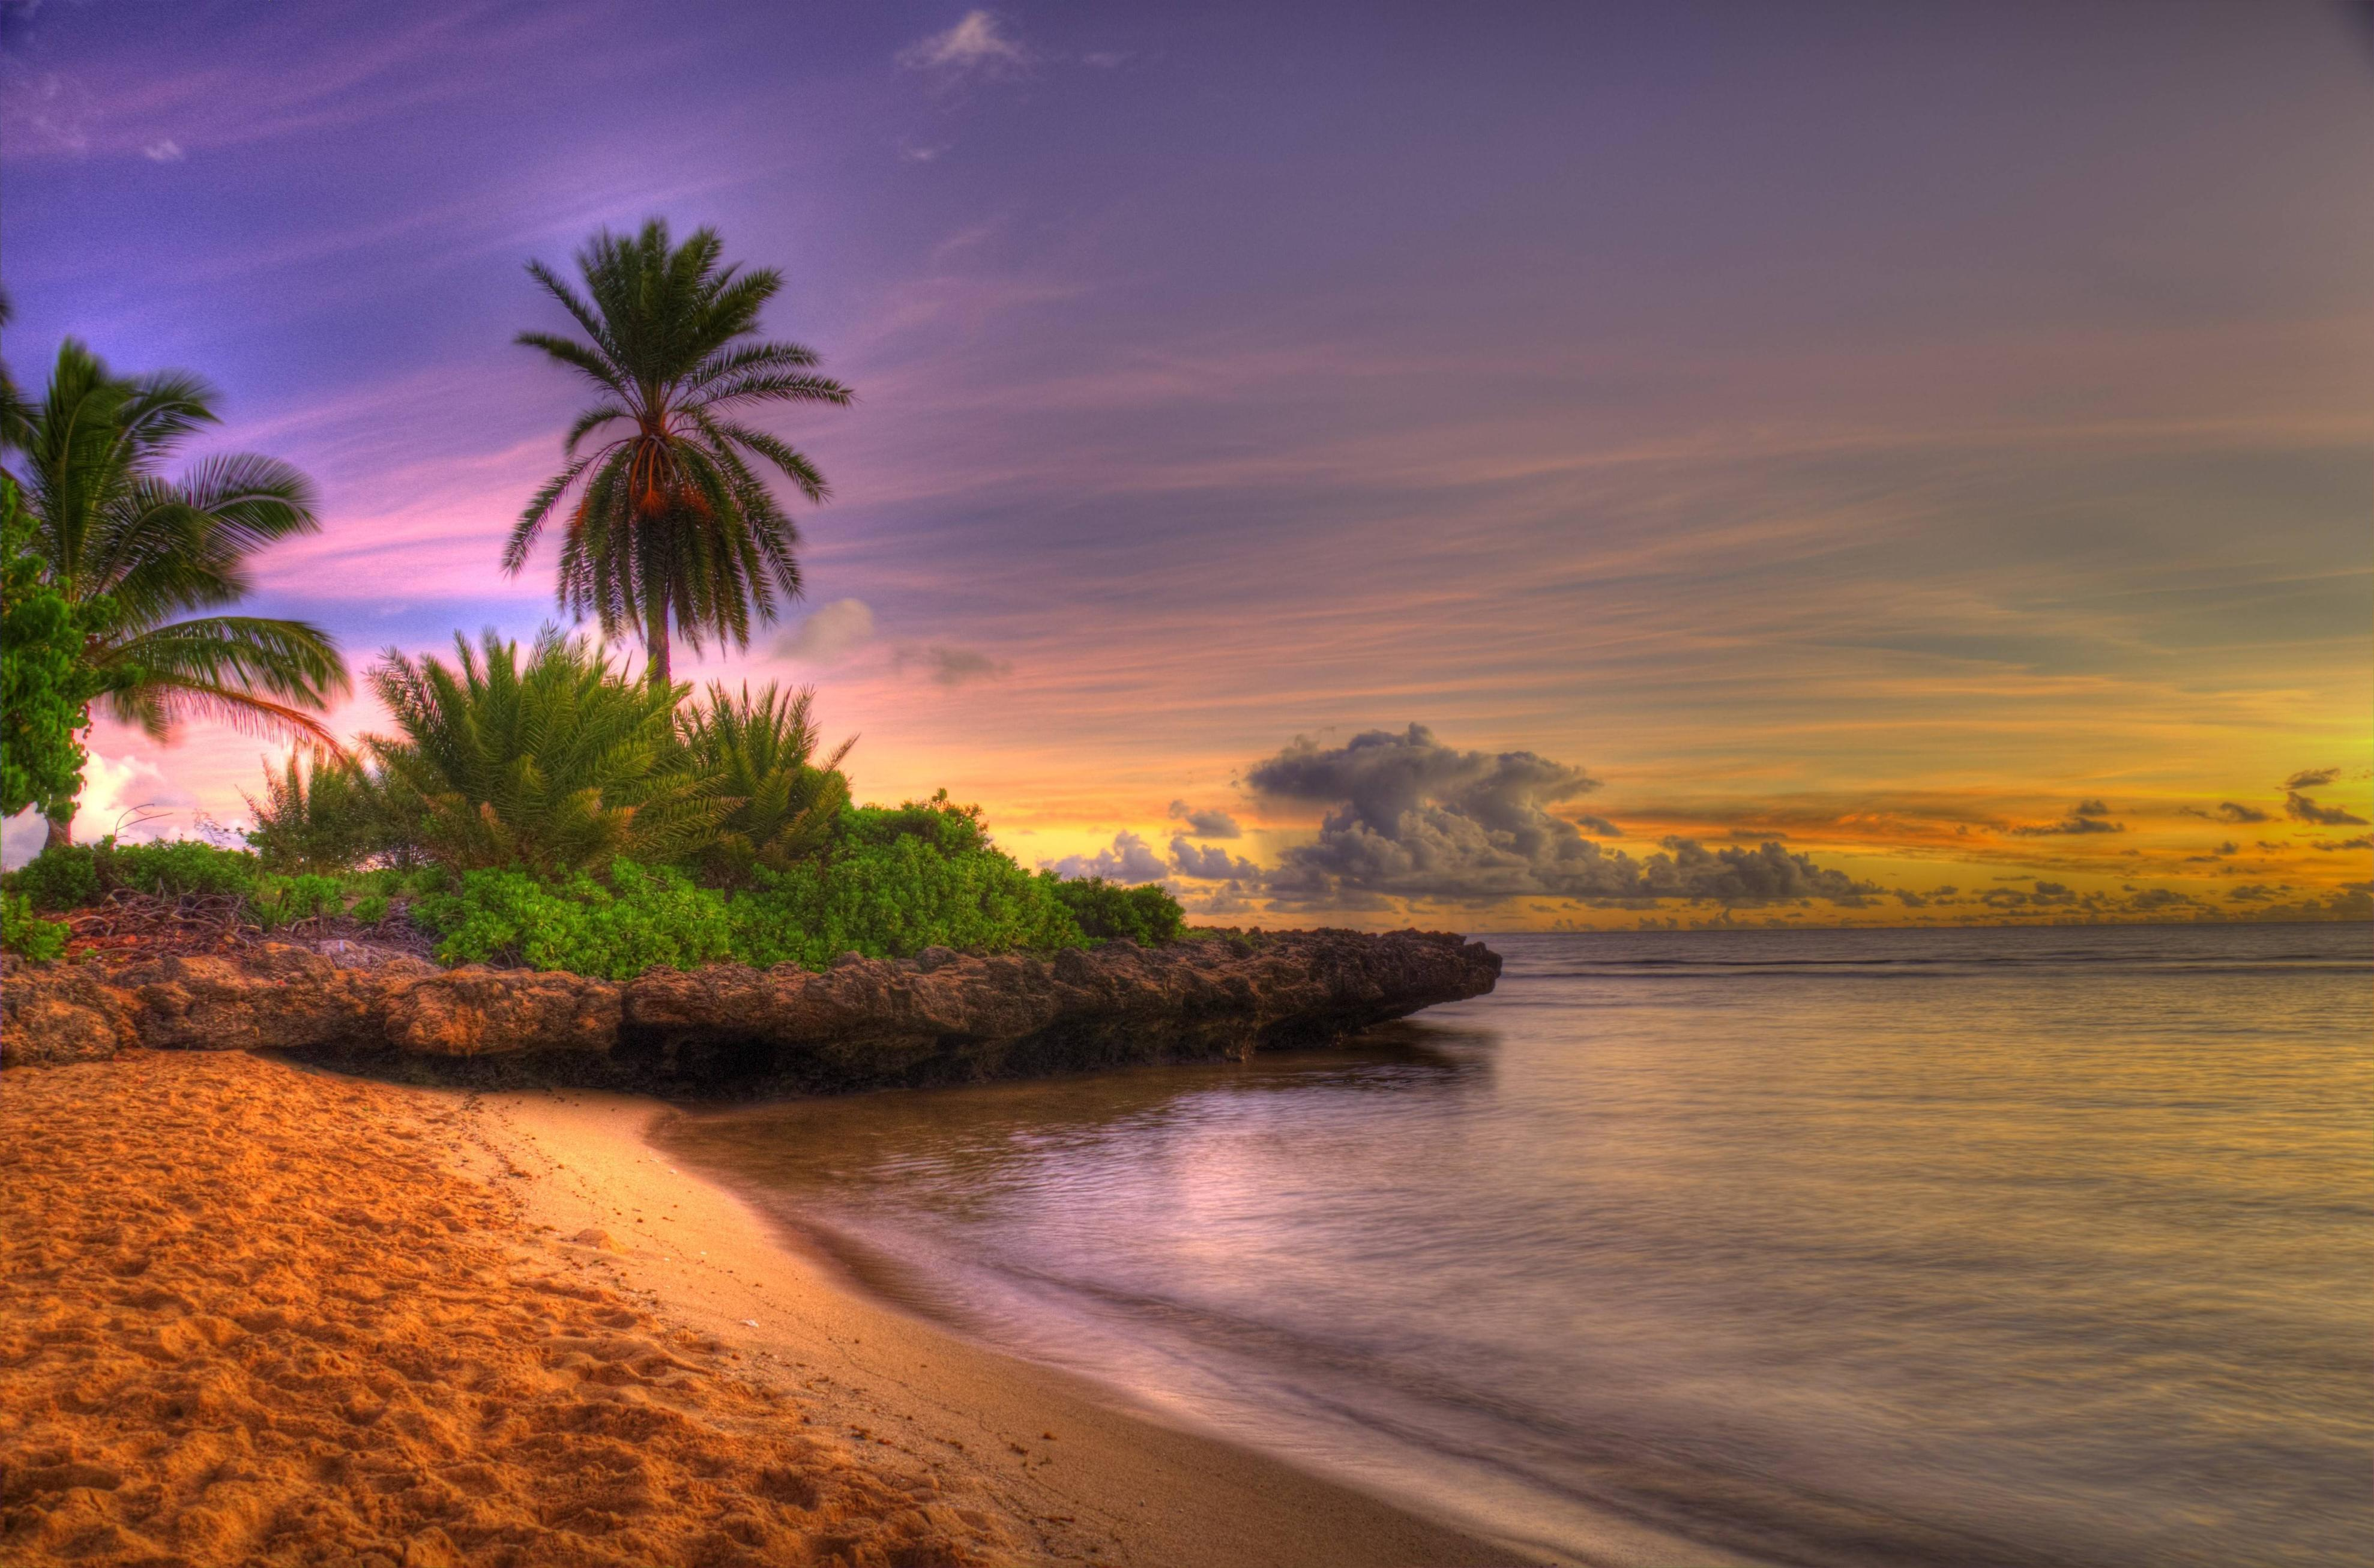 Android Beach Wallpapers Group 67: Sunset Beaches Wallpapers